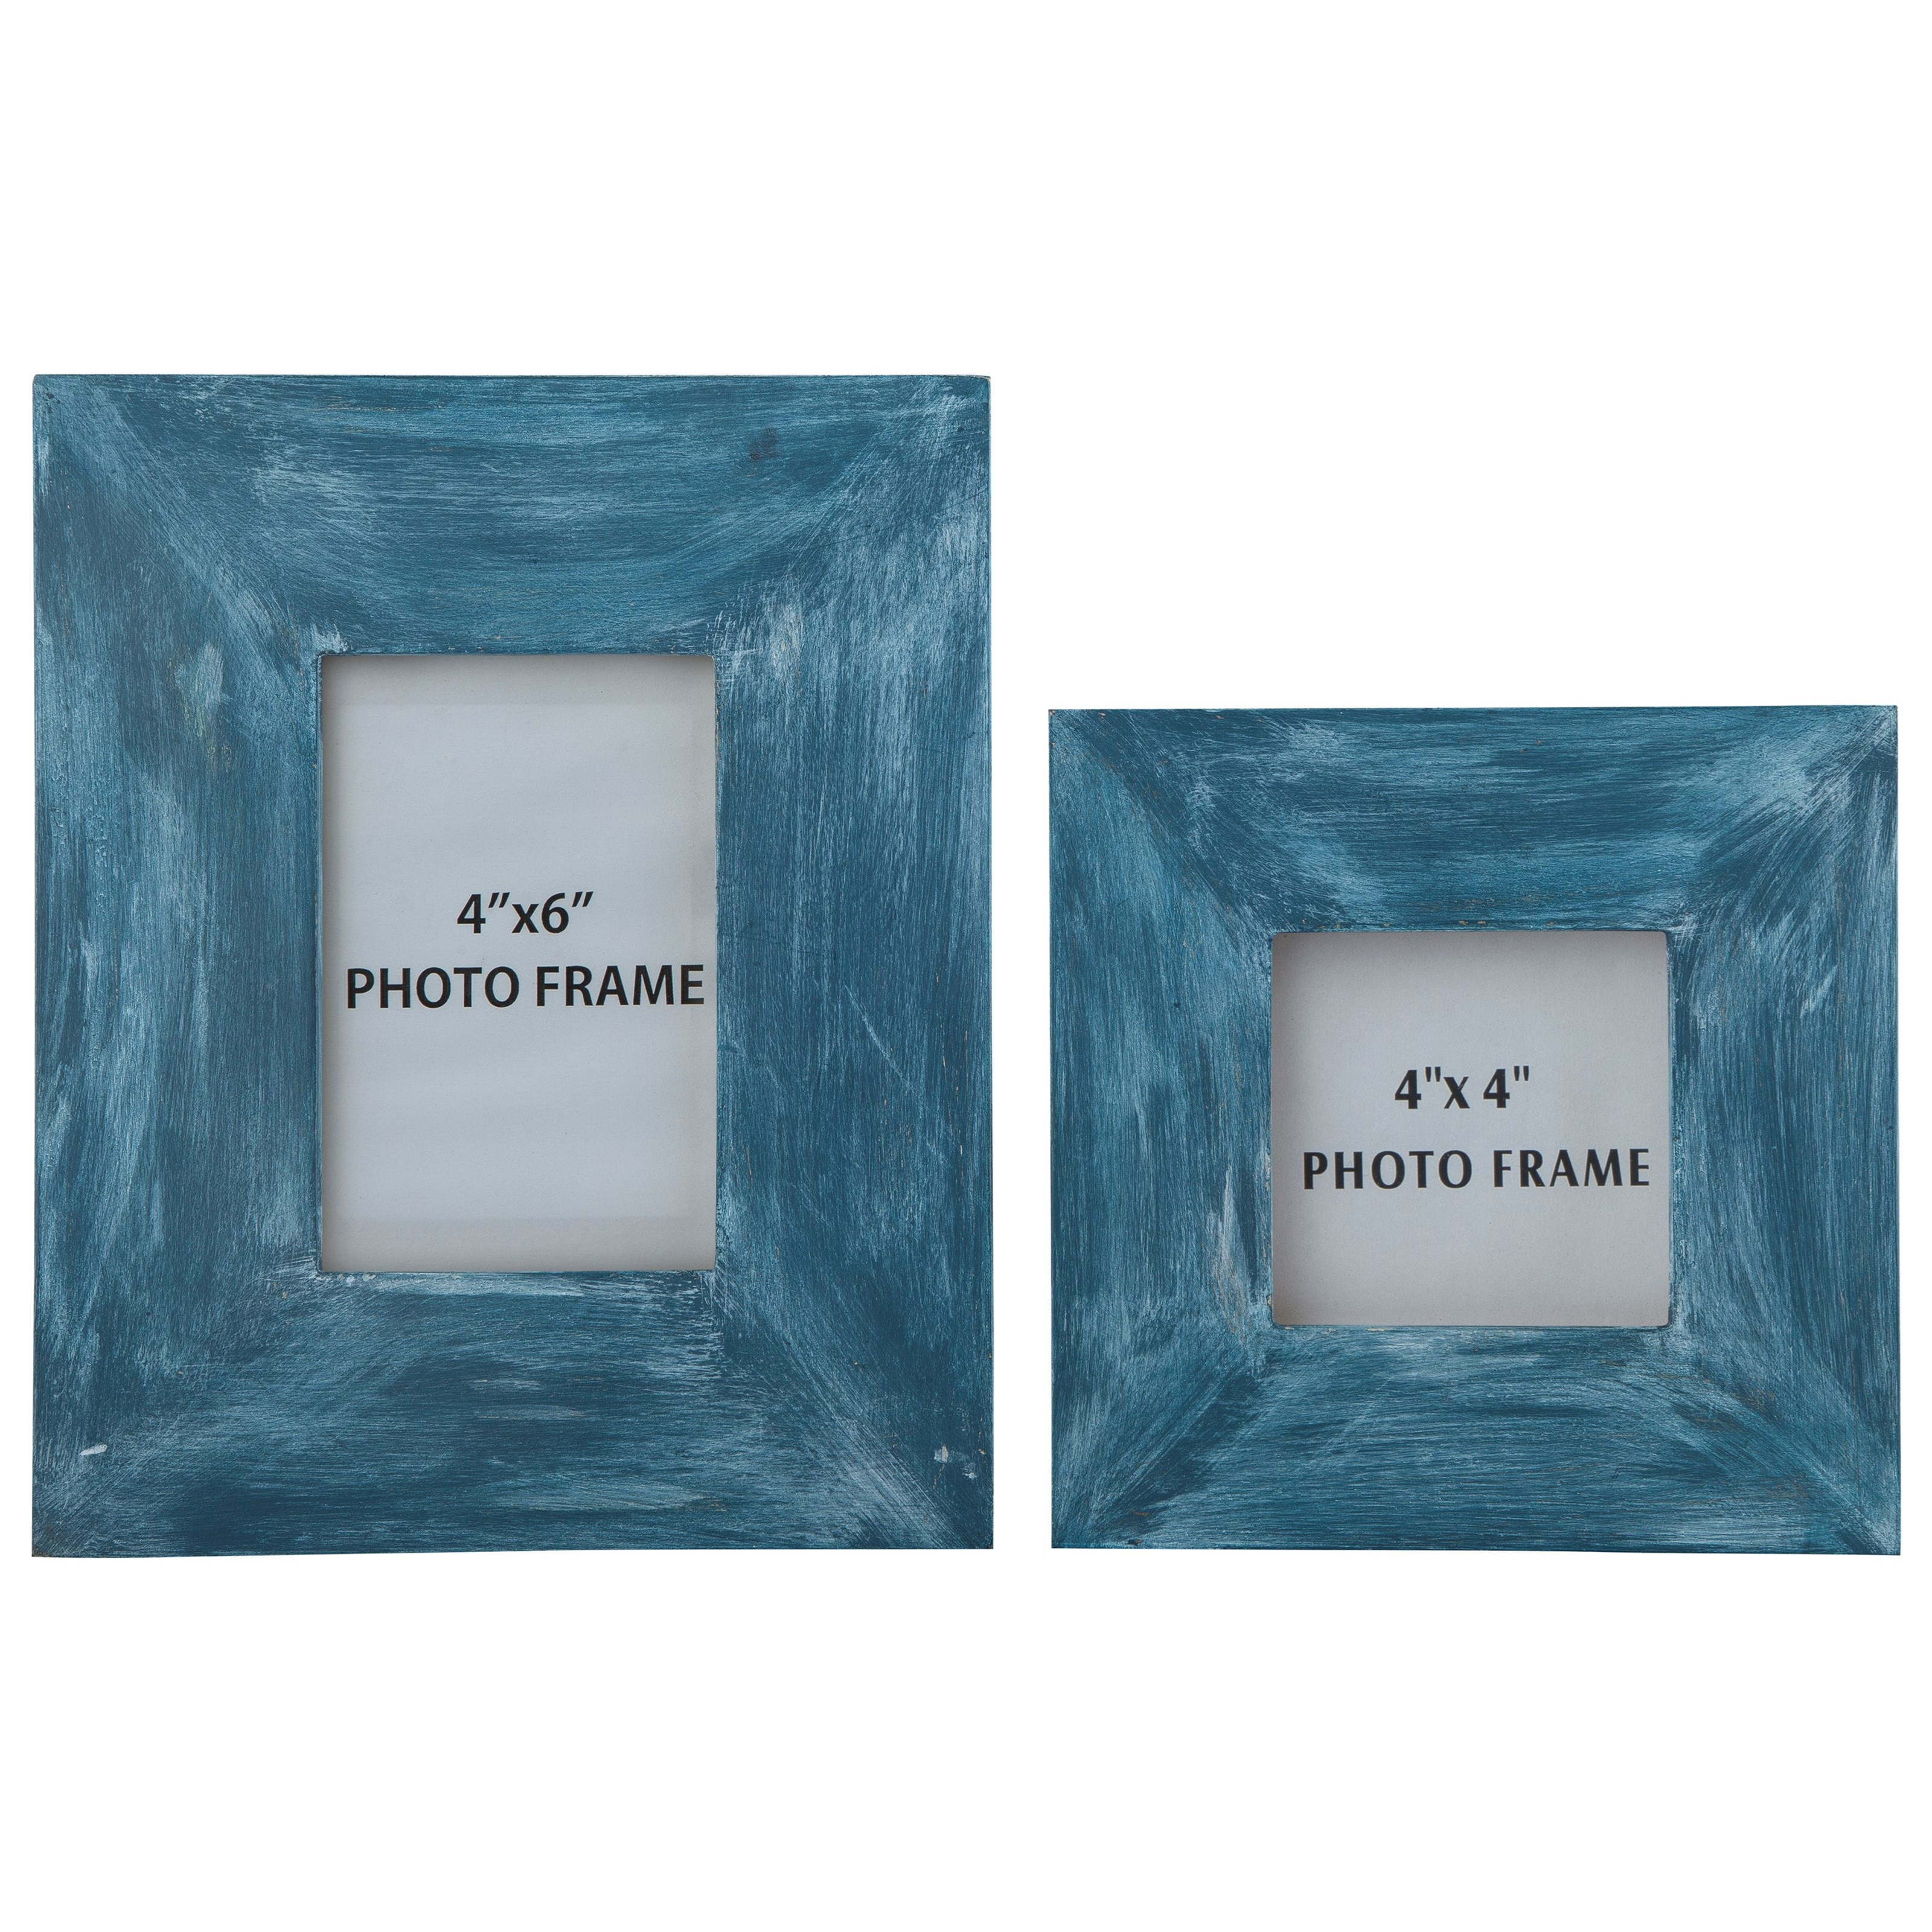 Signature Design by Ashley Accents Baeddan Antique Blue Photo Frames (Set of 2) - Item Number: A2000147F